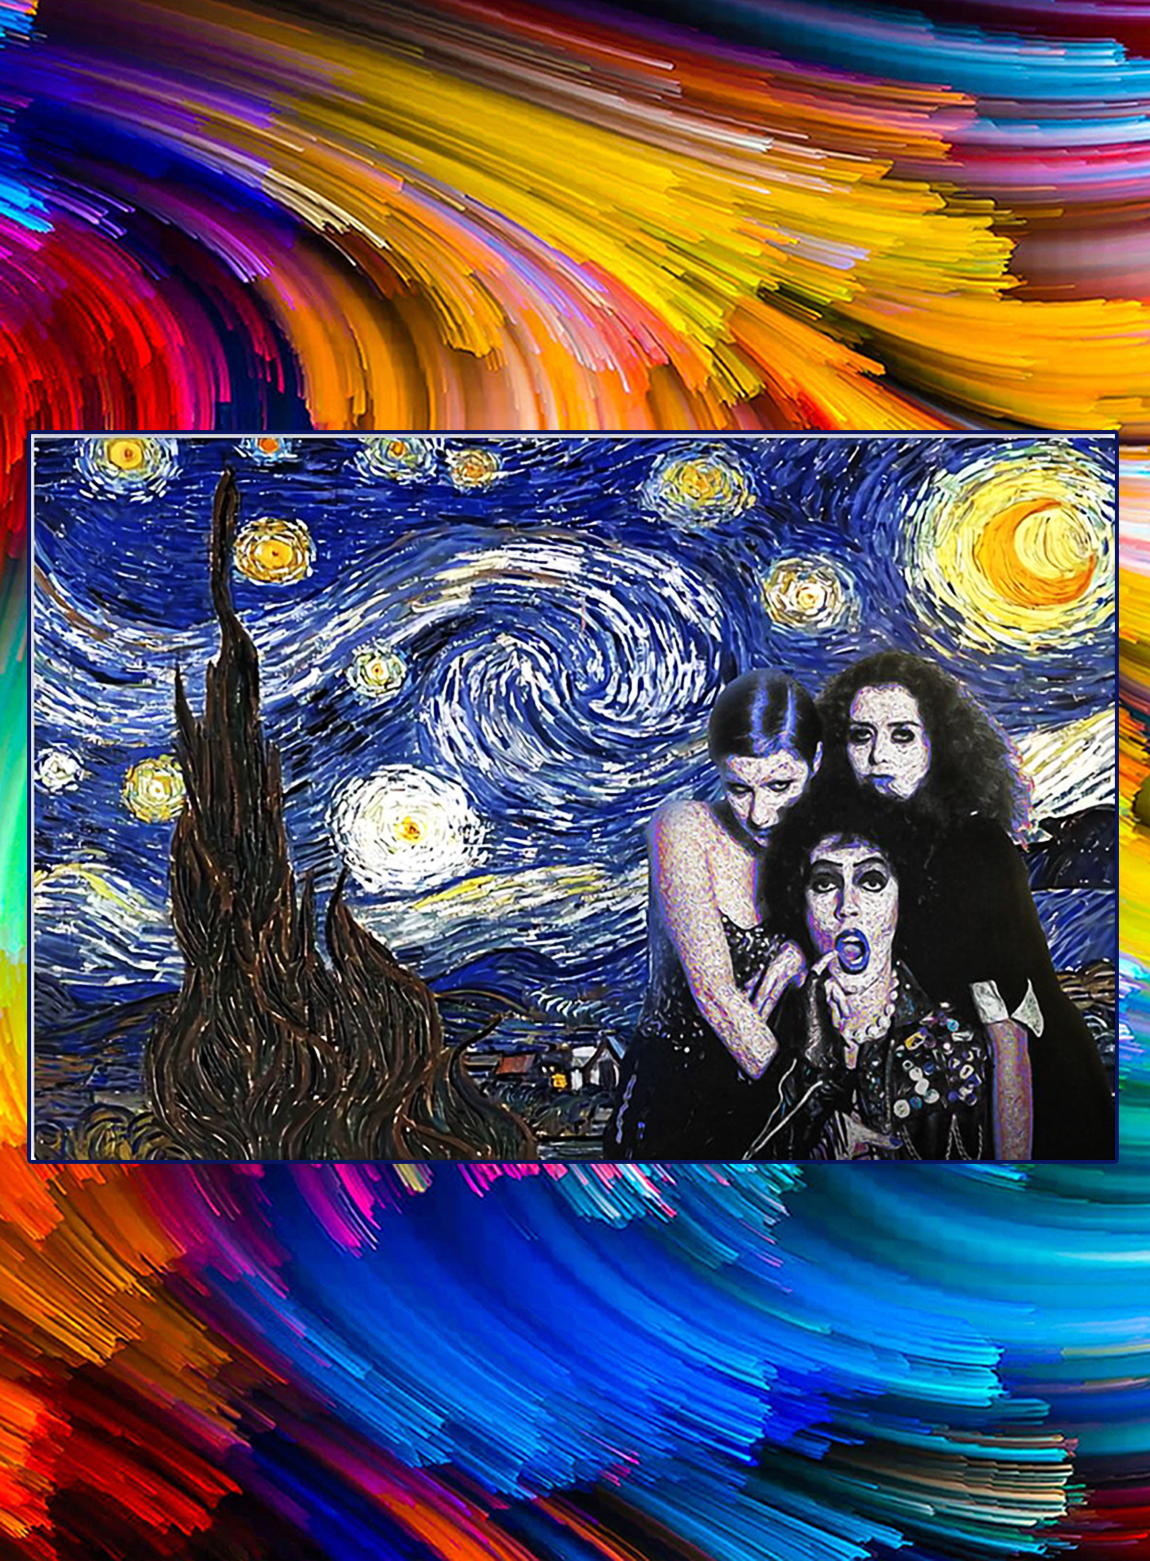 Rocky horror picture show starry night poster - A3